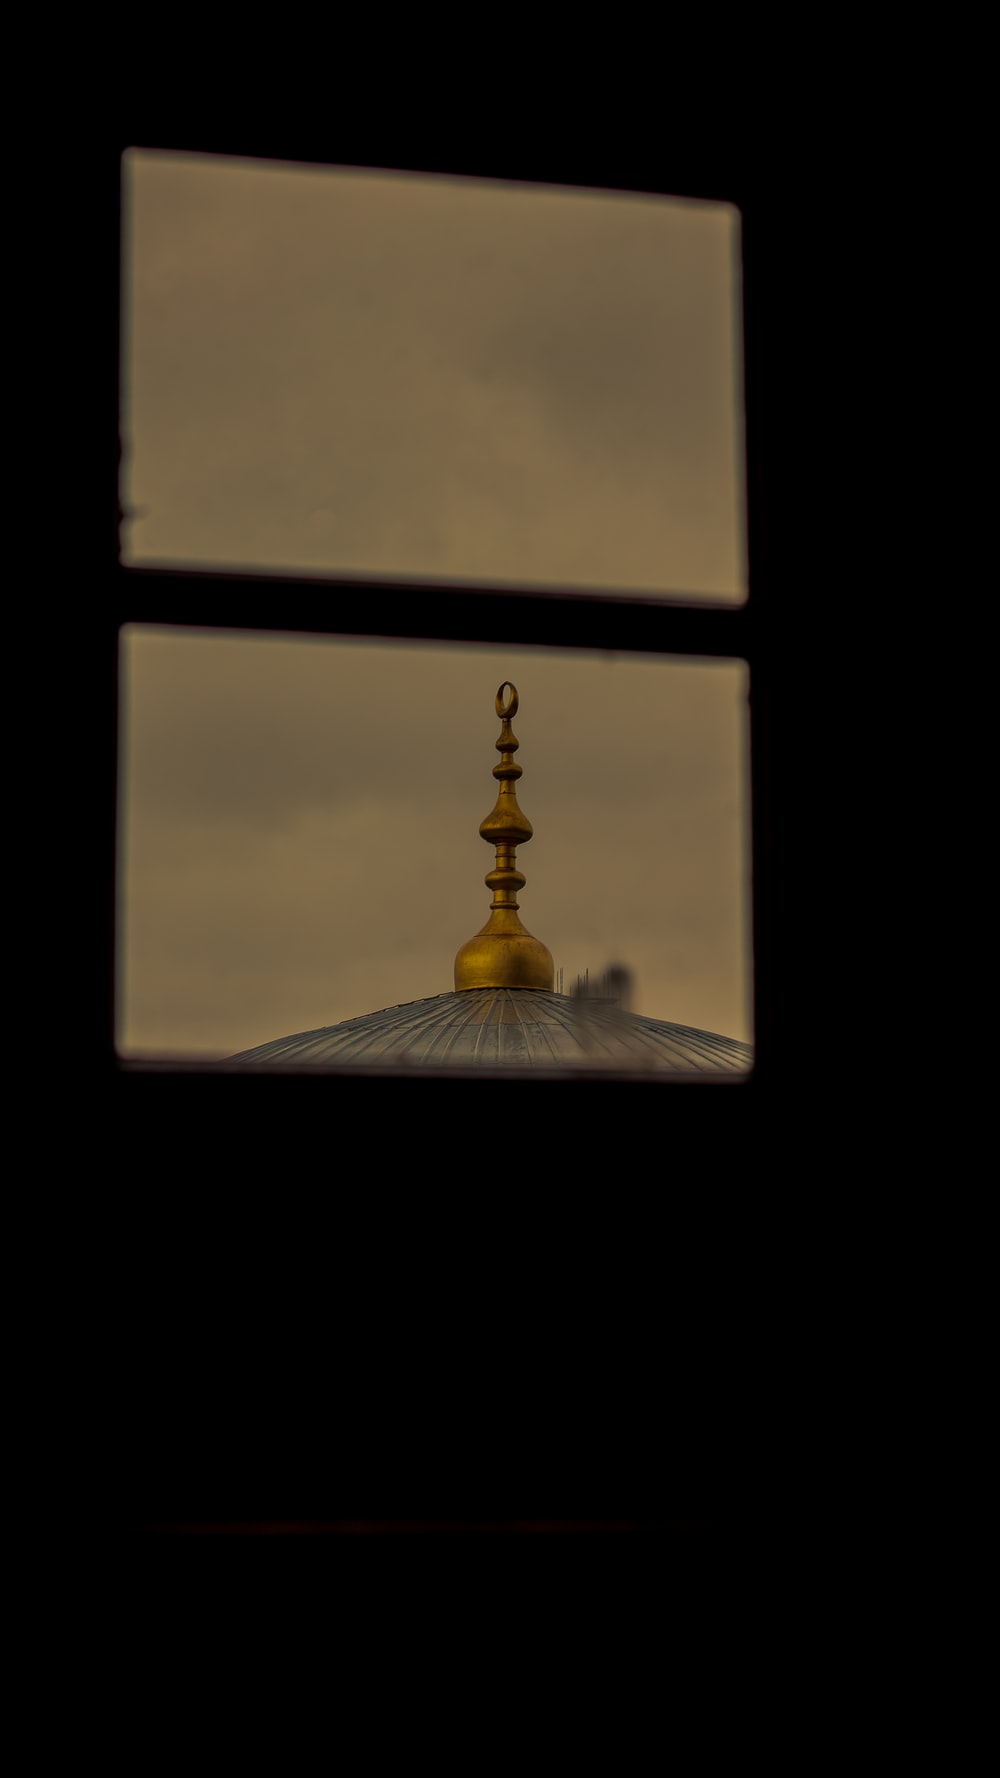 gold and black dome building